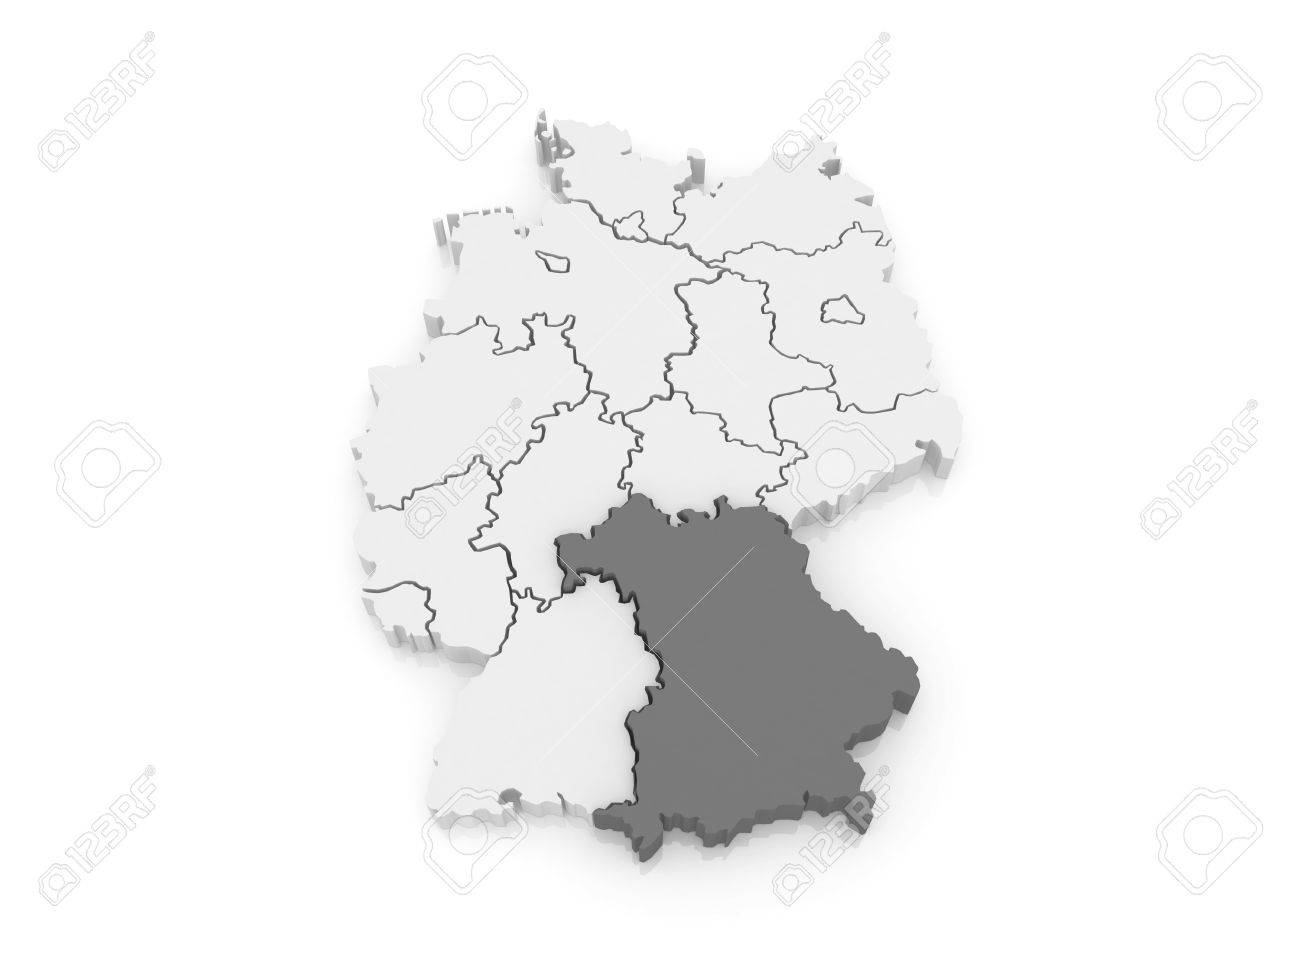 Map Of Germany Bavaria.Map Of Bavaria Germany 3d Stock Photo Picture And Royalty Free